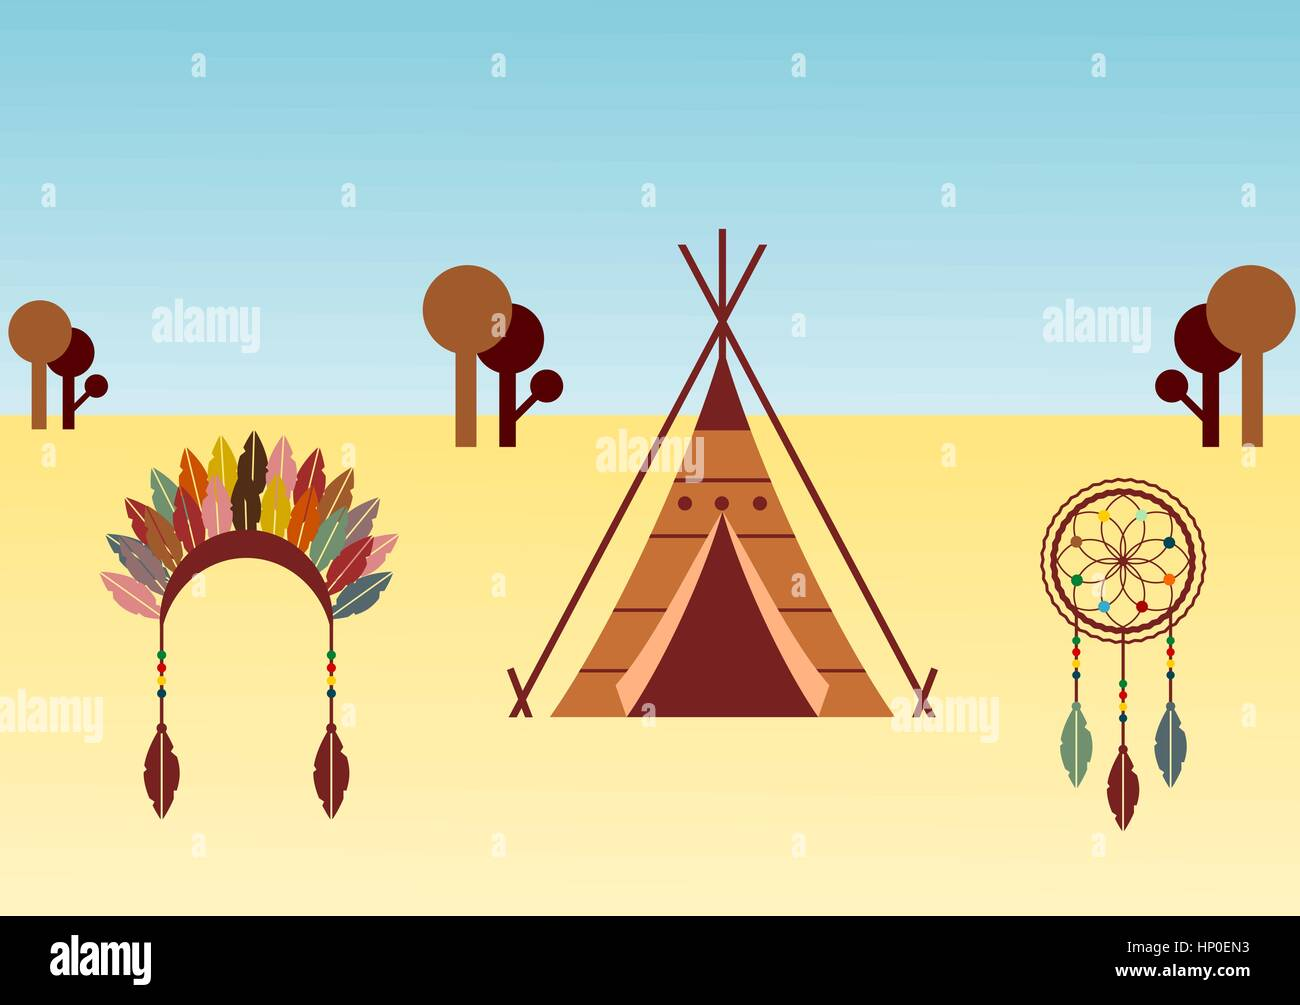 Native american themed illustration with wigwam, dreamcatcher and headdress - Stock Image